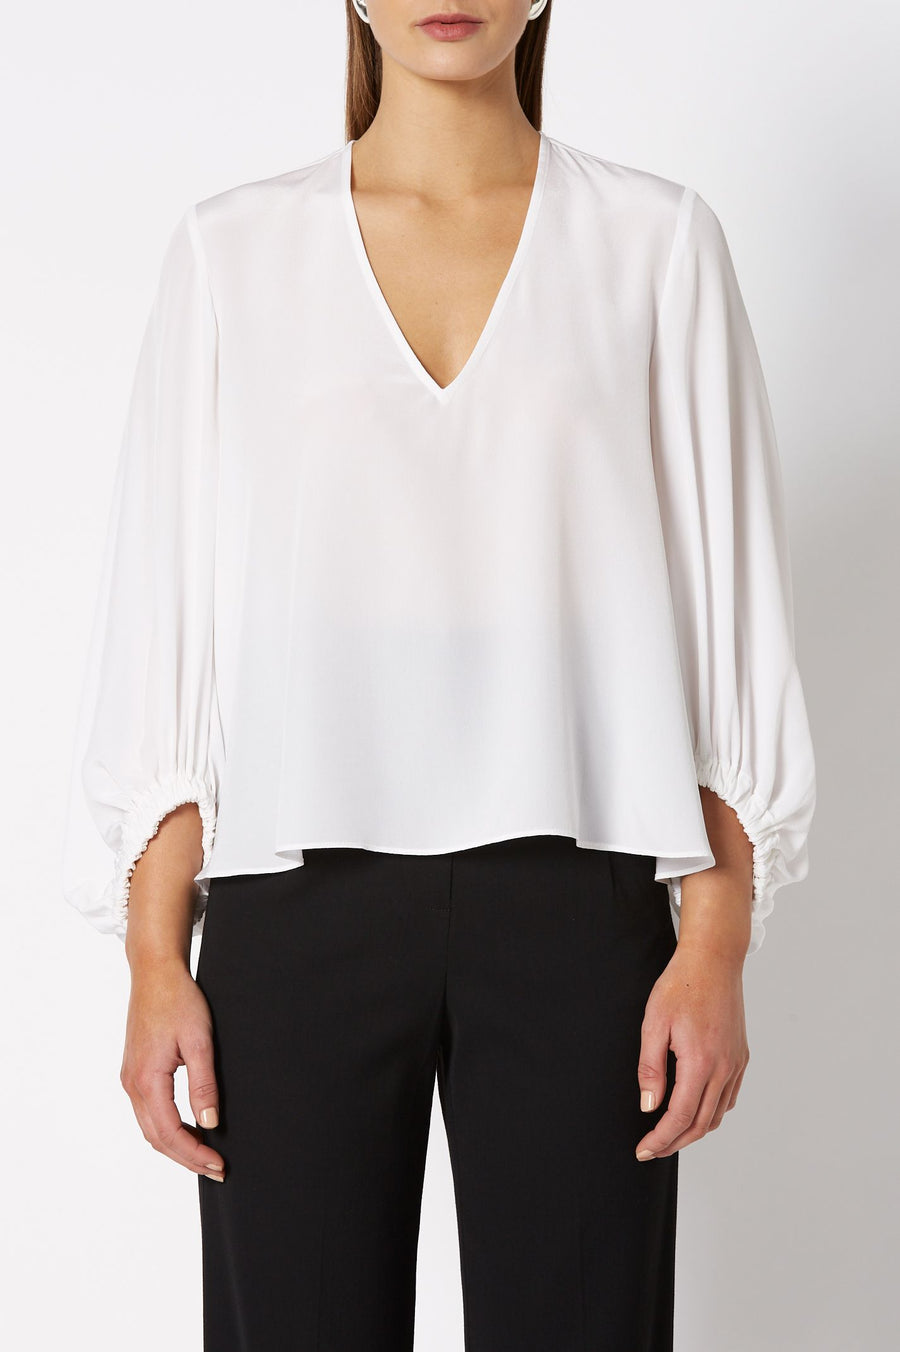 CDC V Neck Blouse White, Relaxed Fit, ¾ Sleeves, elasticized cuffs, V- neckline